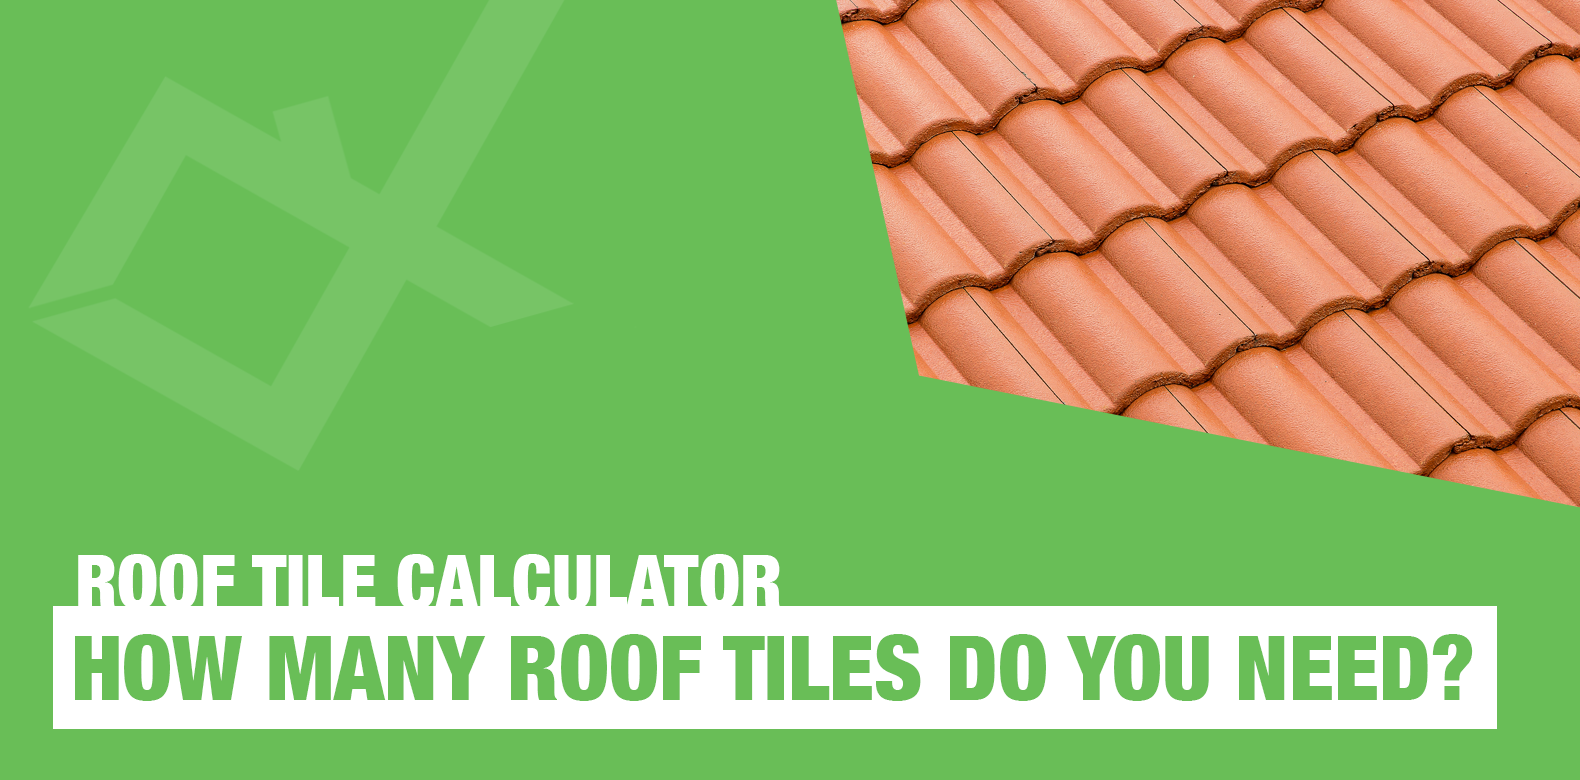 Roof Tile Calculator: How Many Roof Tiles Do I Need?